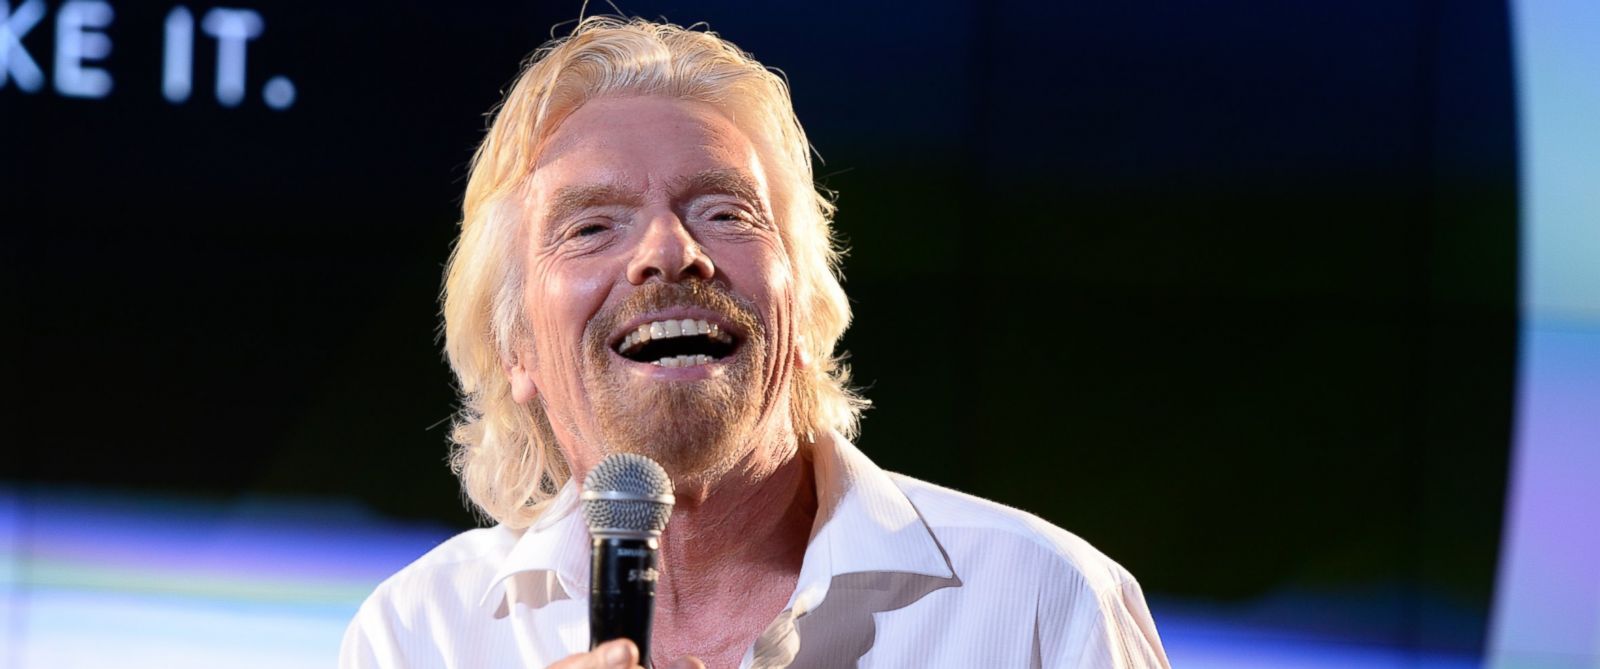 PHOTO: Sir Richard Branson speaks at the American Museum of Natural History on Sept. 22, 2014 in New York City.